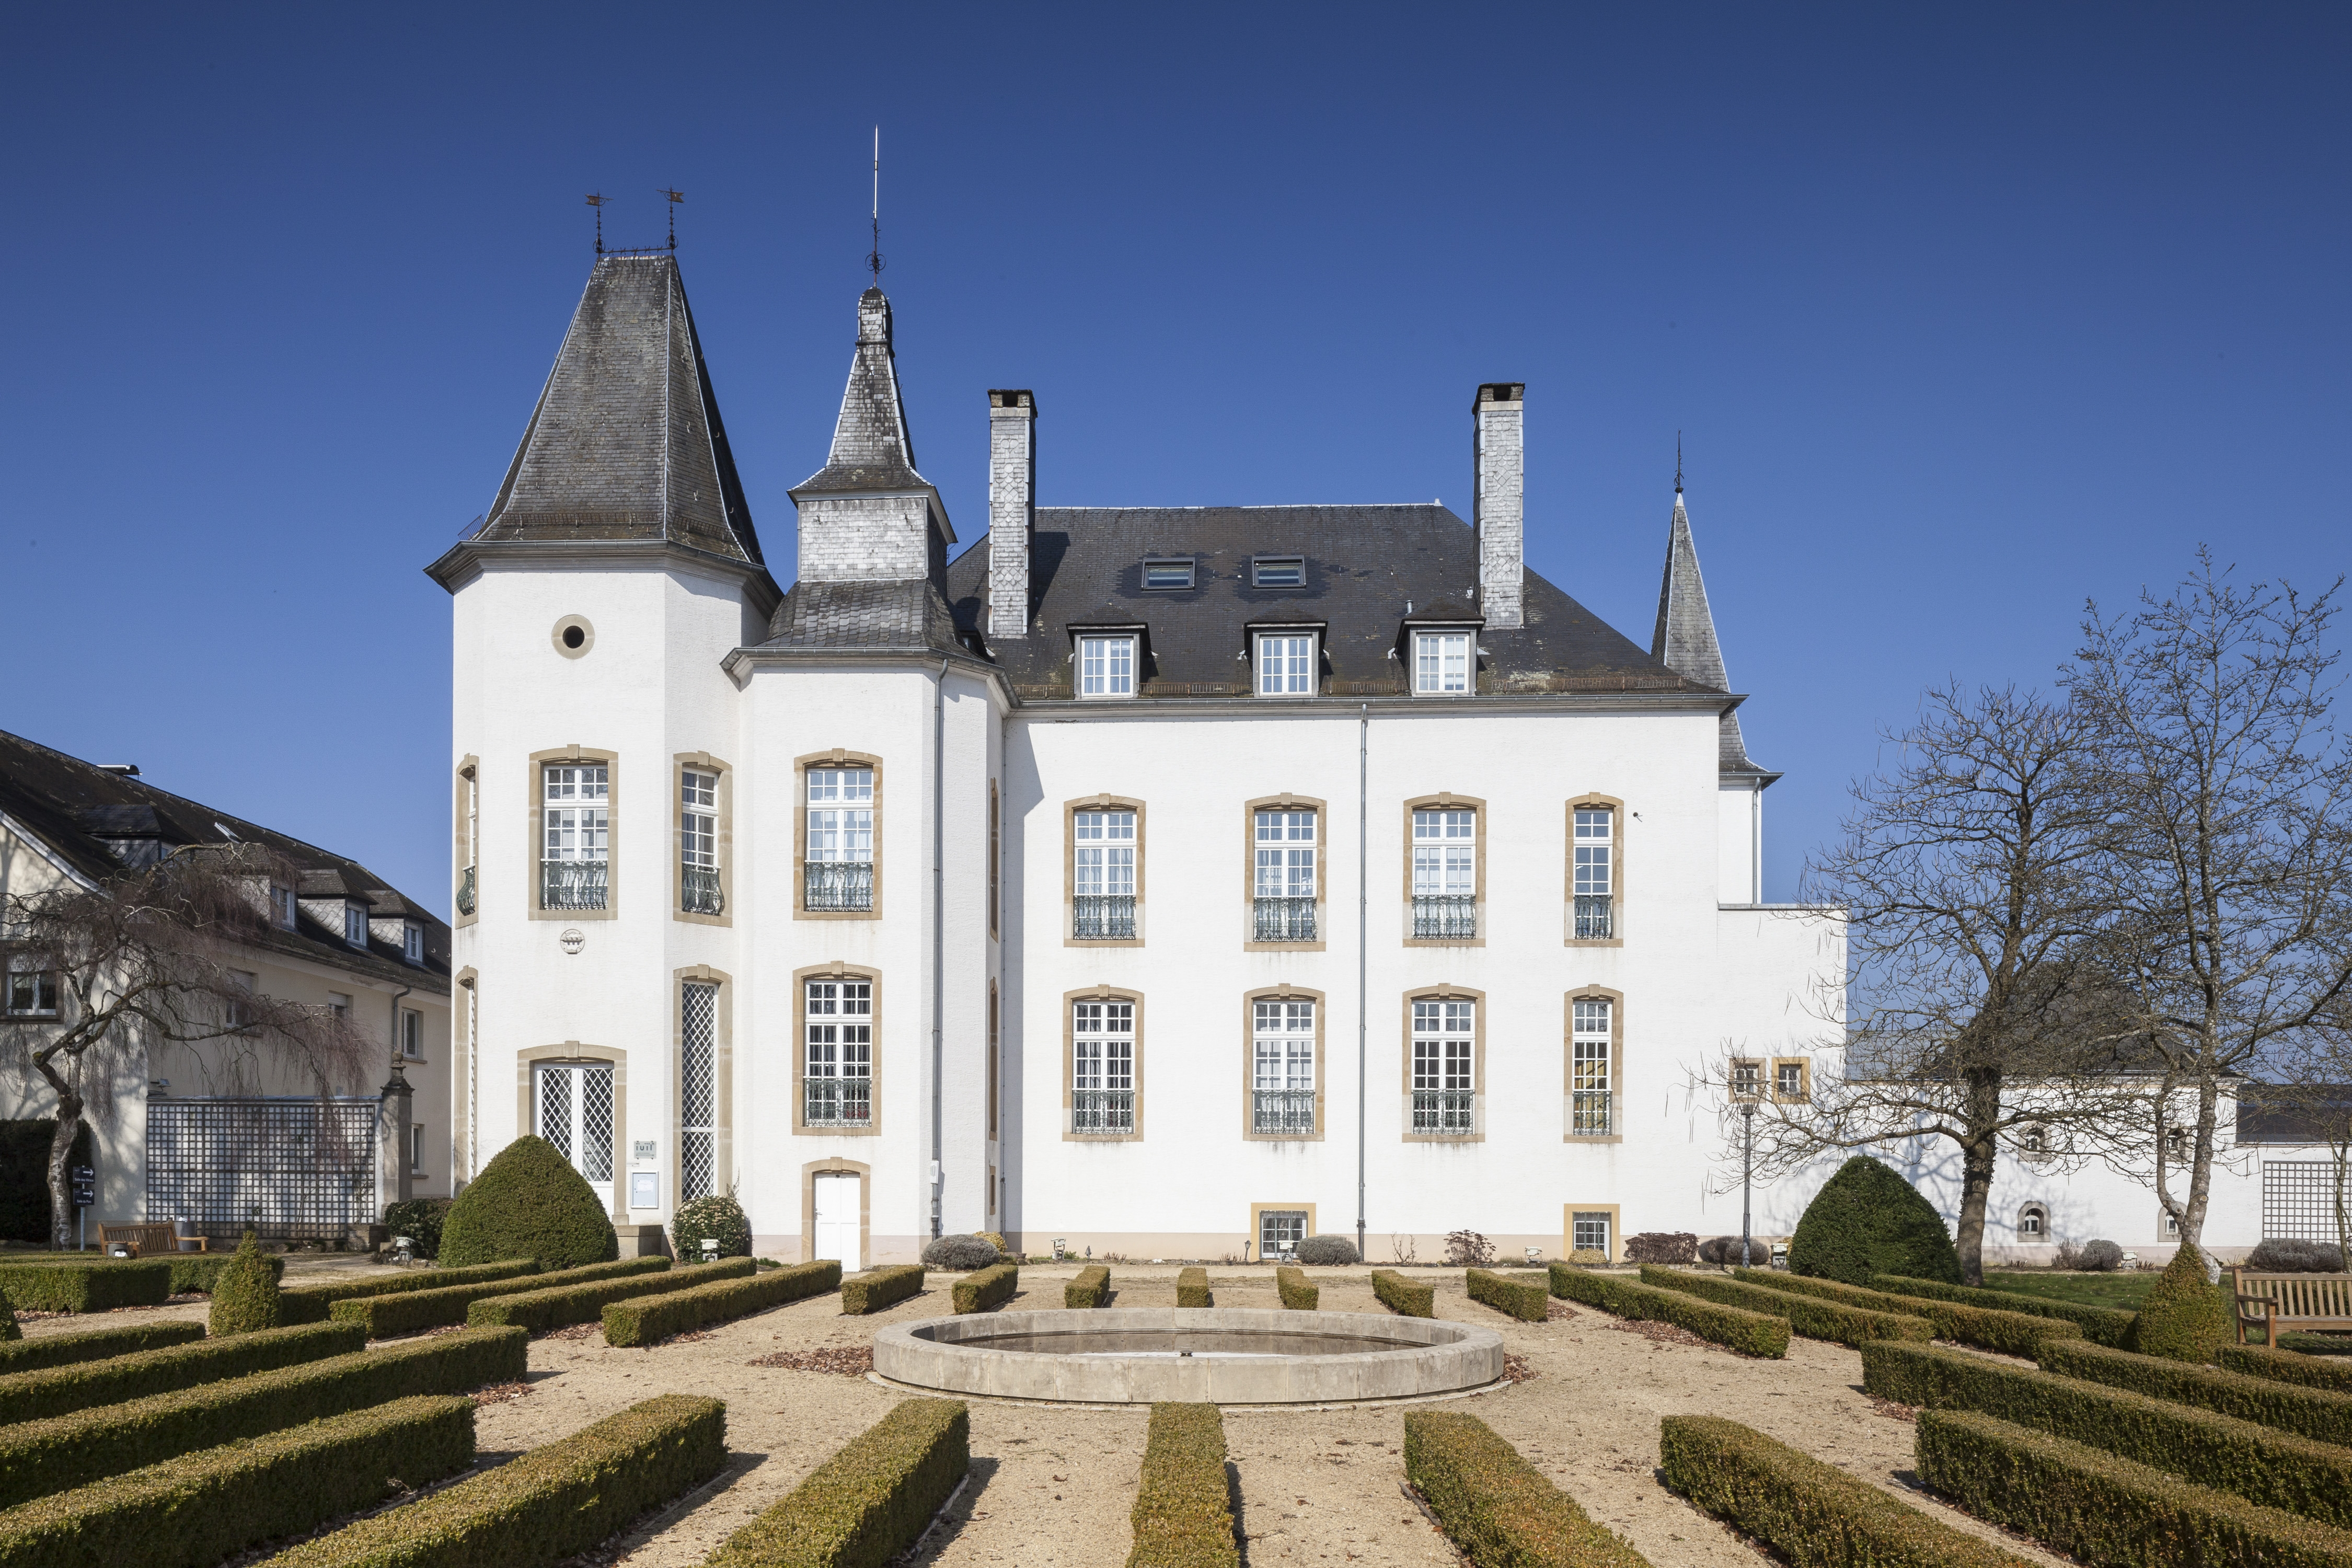 Munsbach Castle, built in 1775 and now home to a business college, is down the road from a six-bedroom villa on the market for $2.46 million in Luxembourg, which has a pricey housing market.